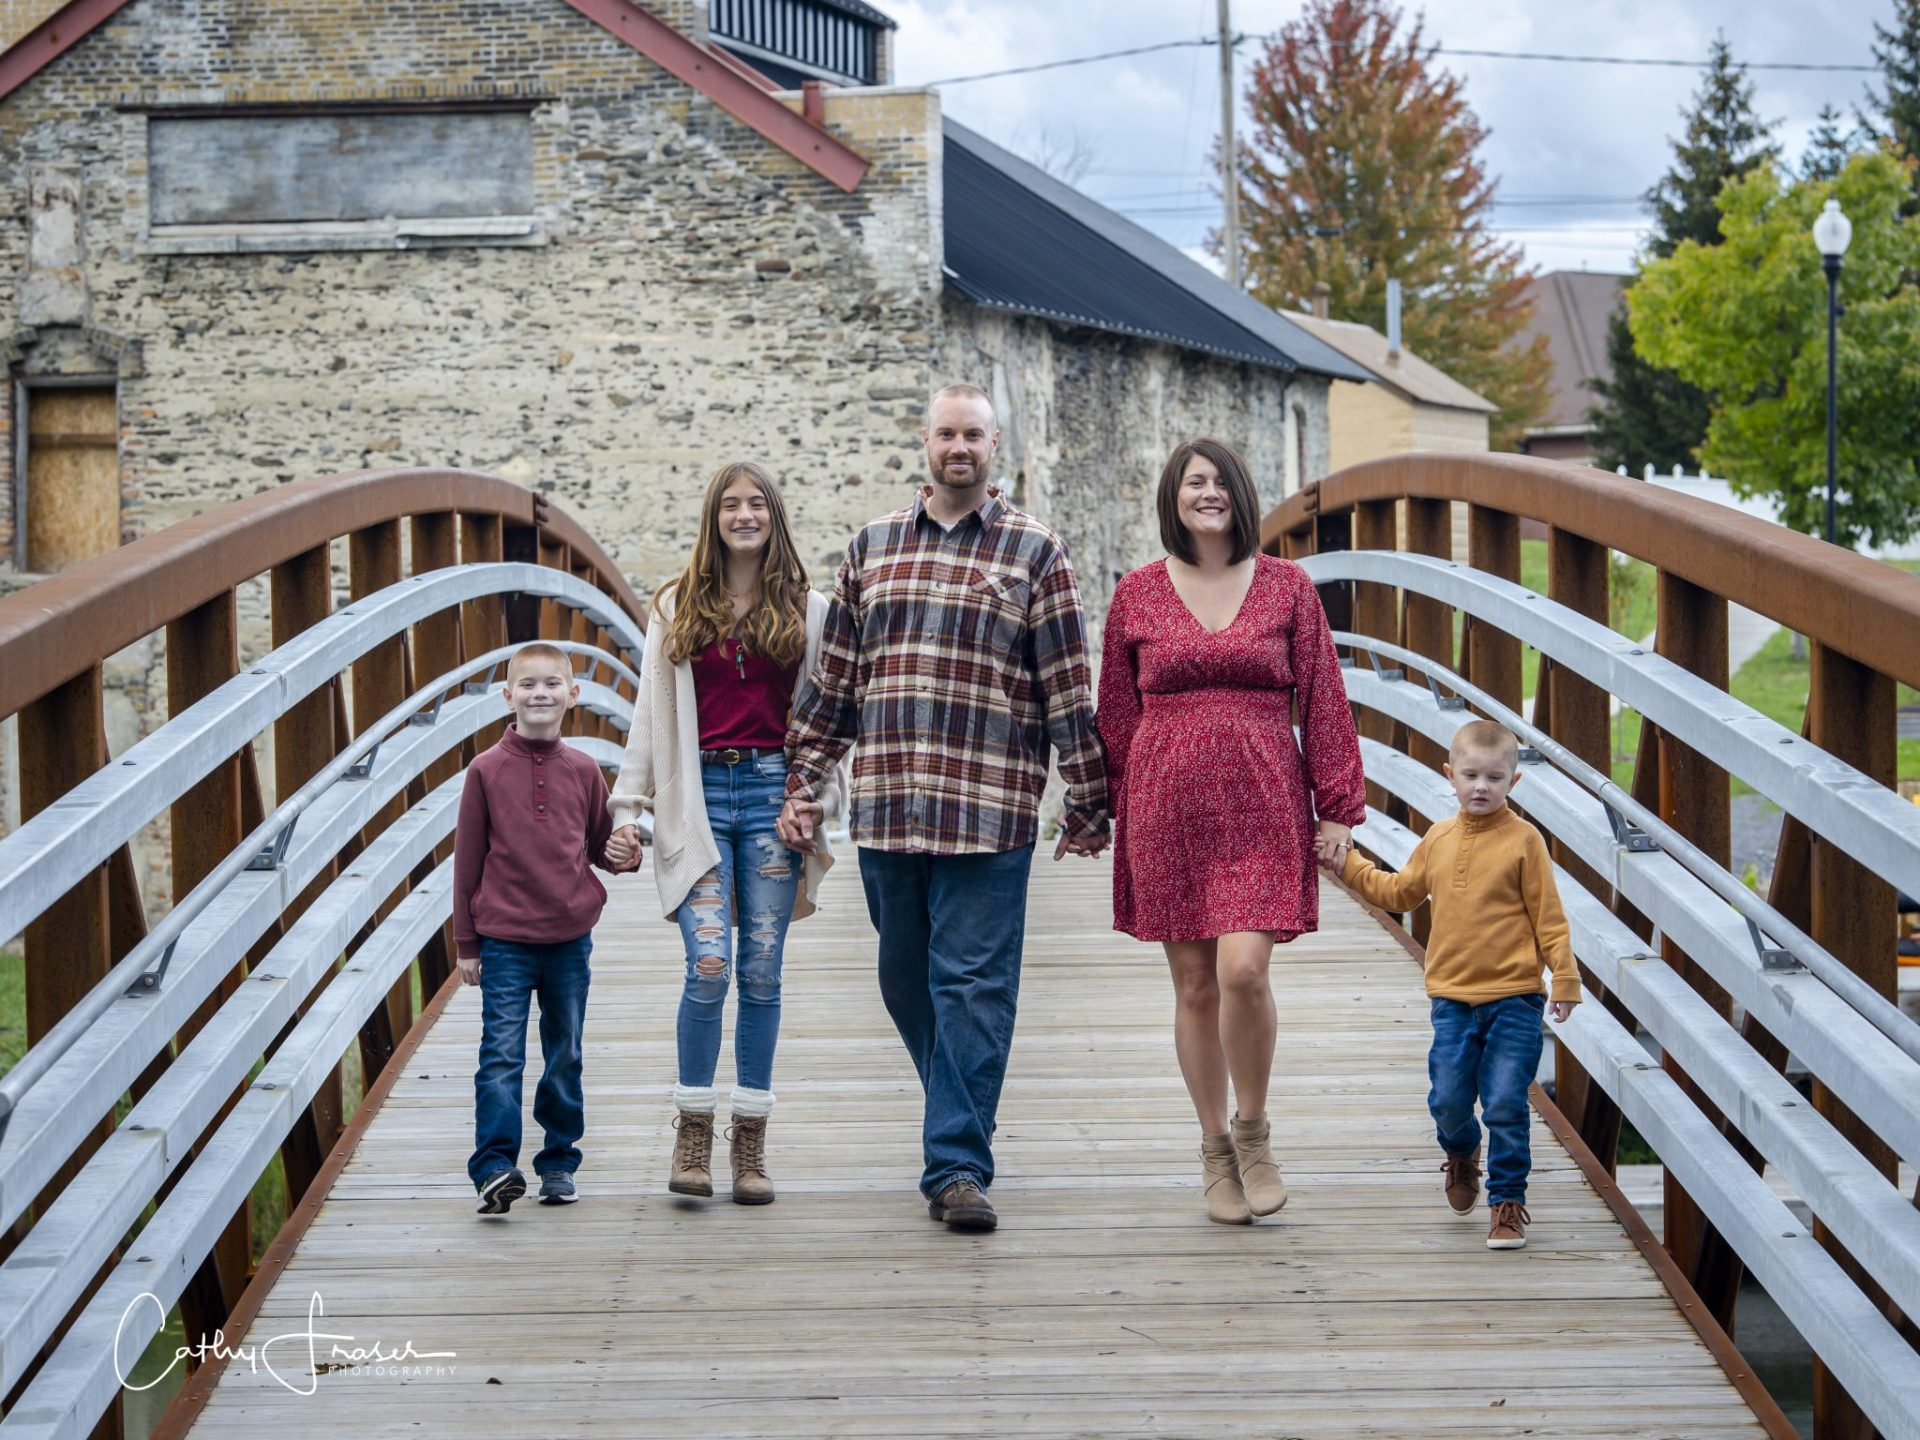 Family walking, holding hands, Penn Yan, New York, natural light, young boys, on footbridge wearing red sweater, and boy in gold sweater, teenage girl in red top, white cardigan, jeans and boots, man in plaid flannel, jeans, woman in red dress